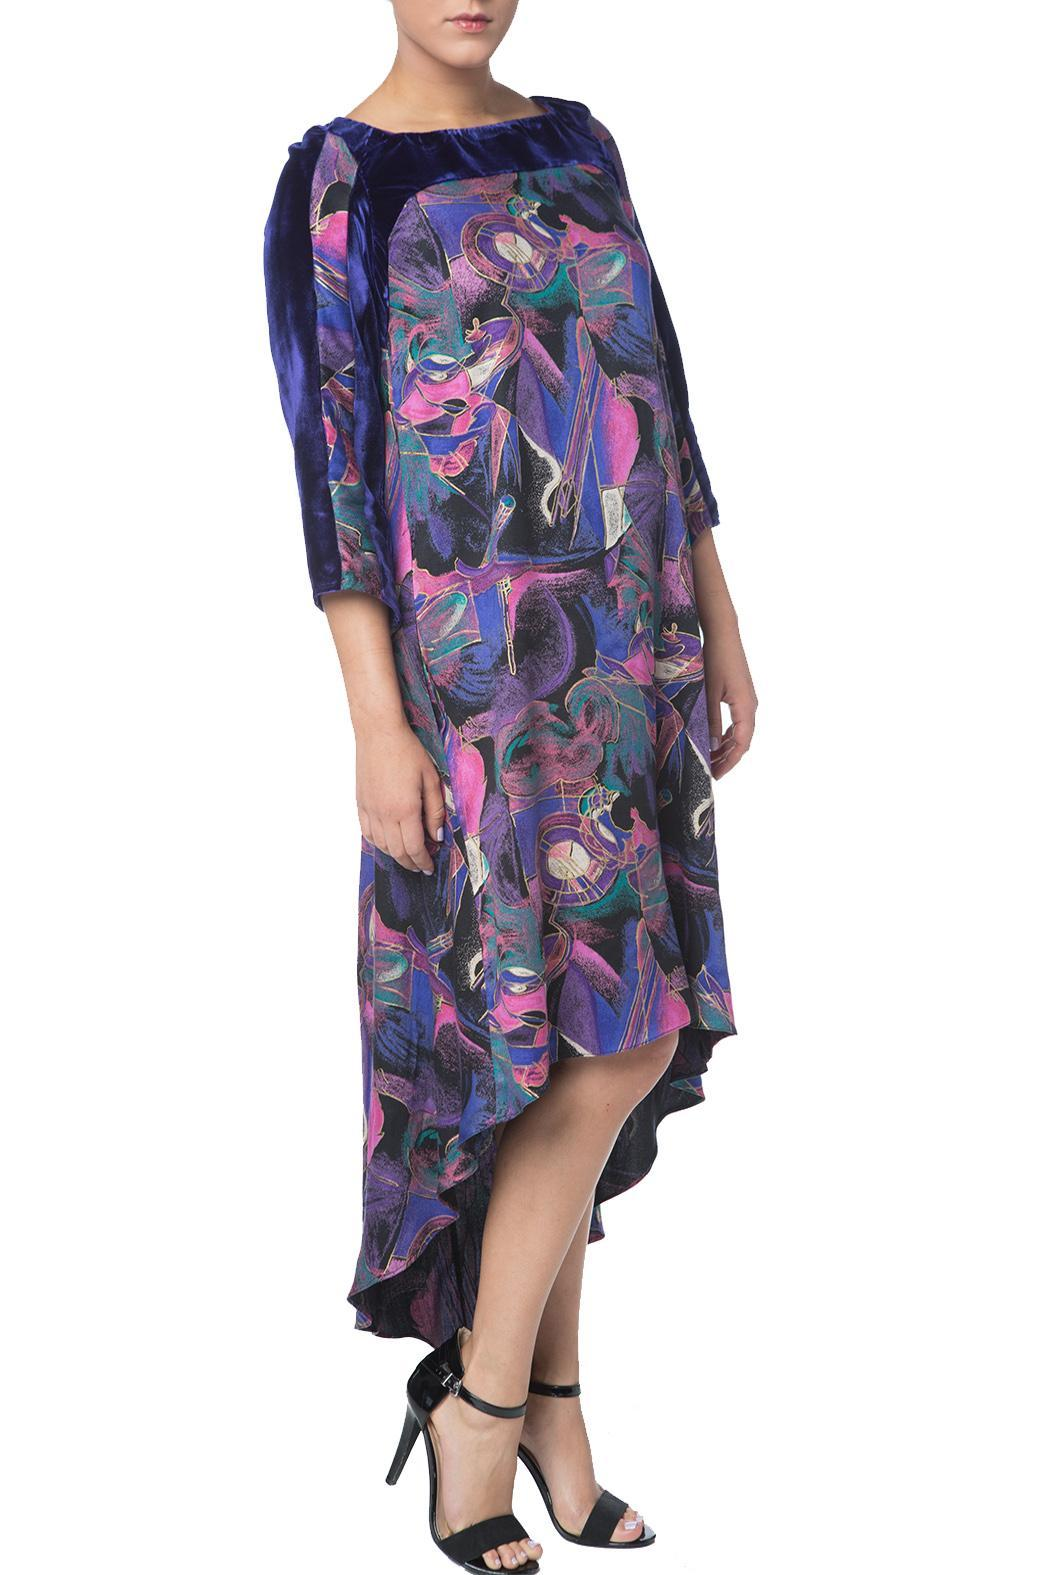 OHLENDORF atelier Rayon Print Dress - Front Full Image